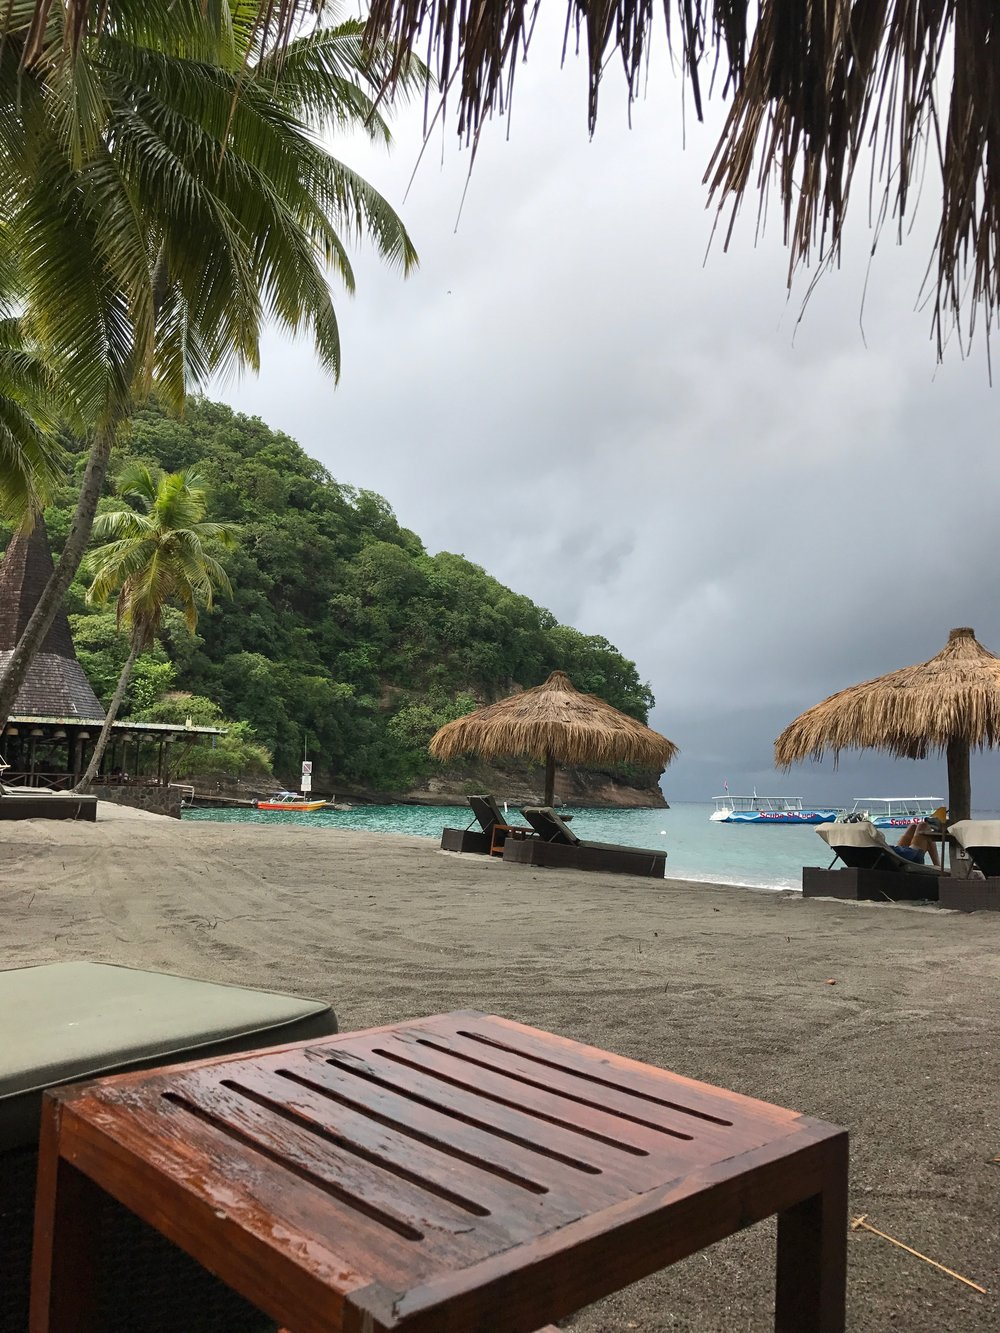 saint lucia travel guide, jade mountain, villa piton, mud baths, drive through volcano, botanical gardens, what to do in saint lucia, where to eat in saint lucia, where to stay in saint lucia, honeymoon spot